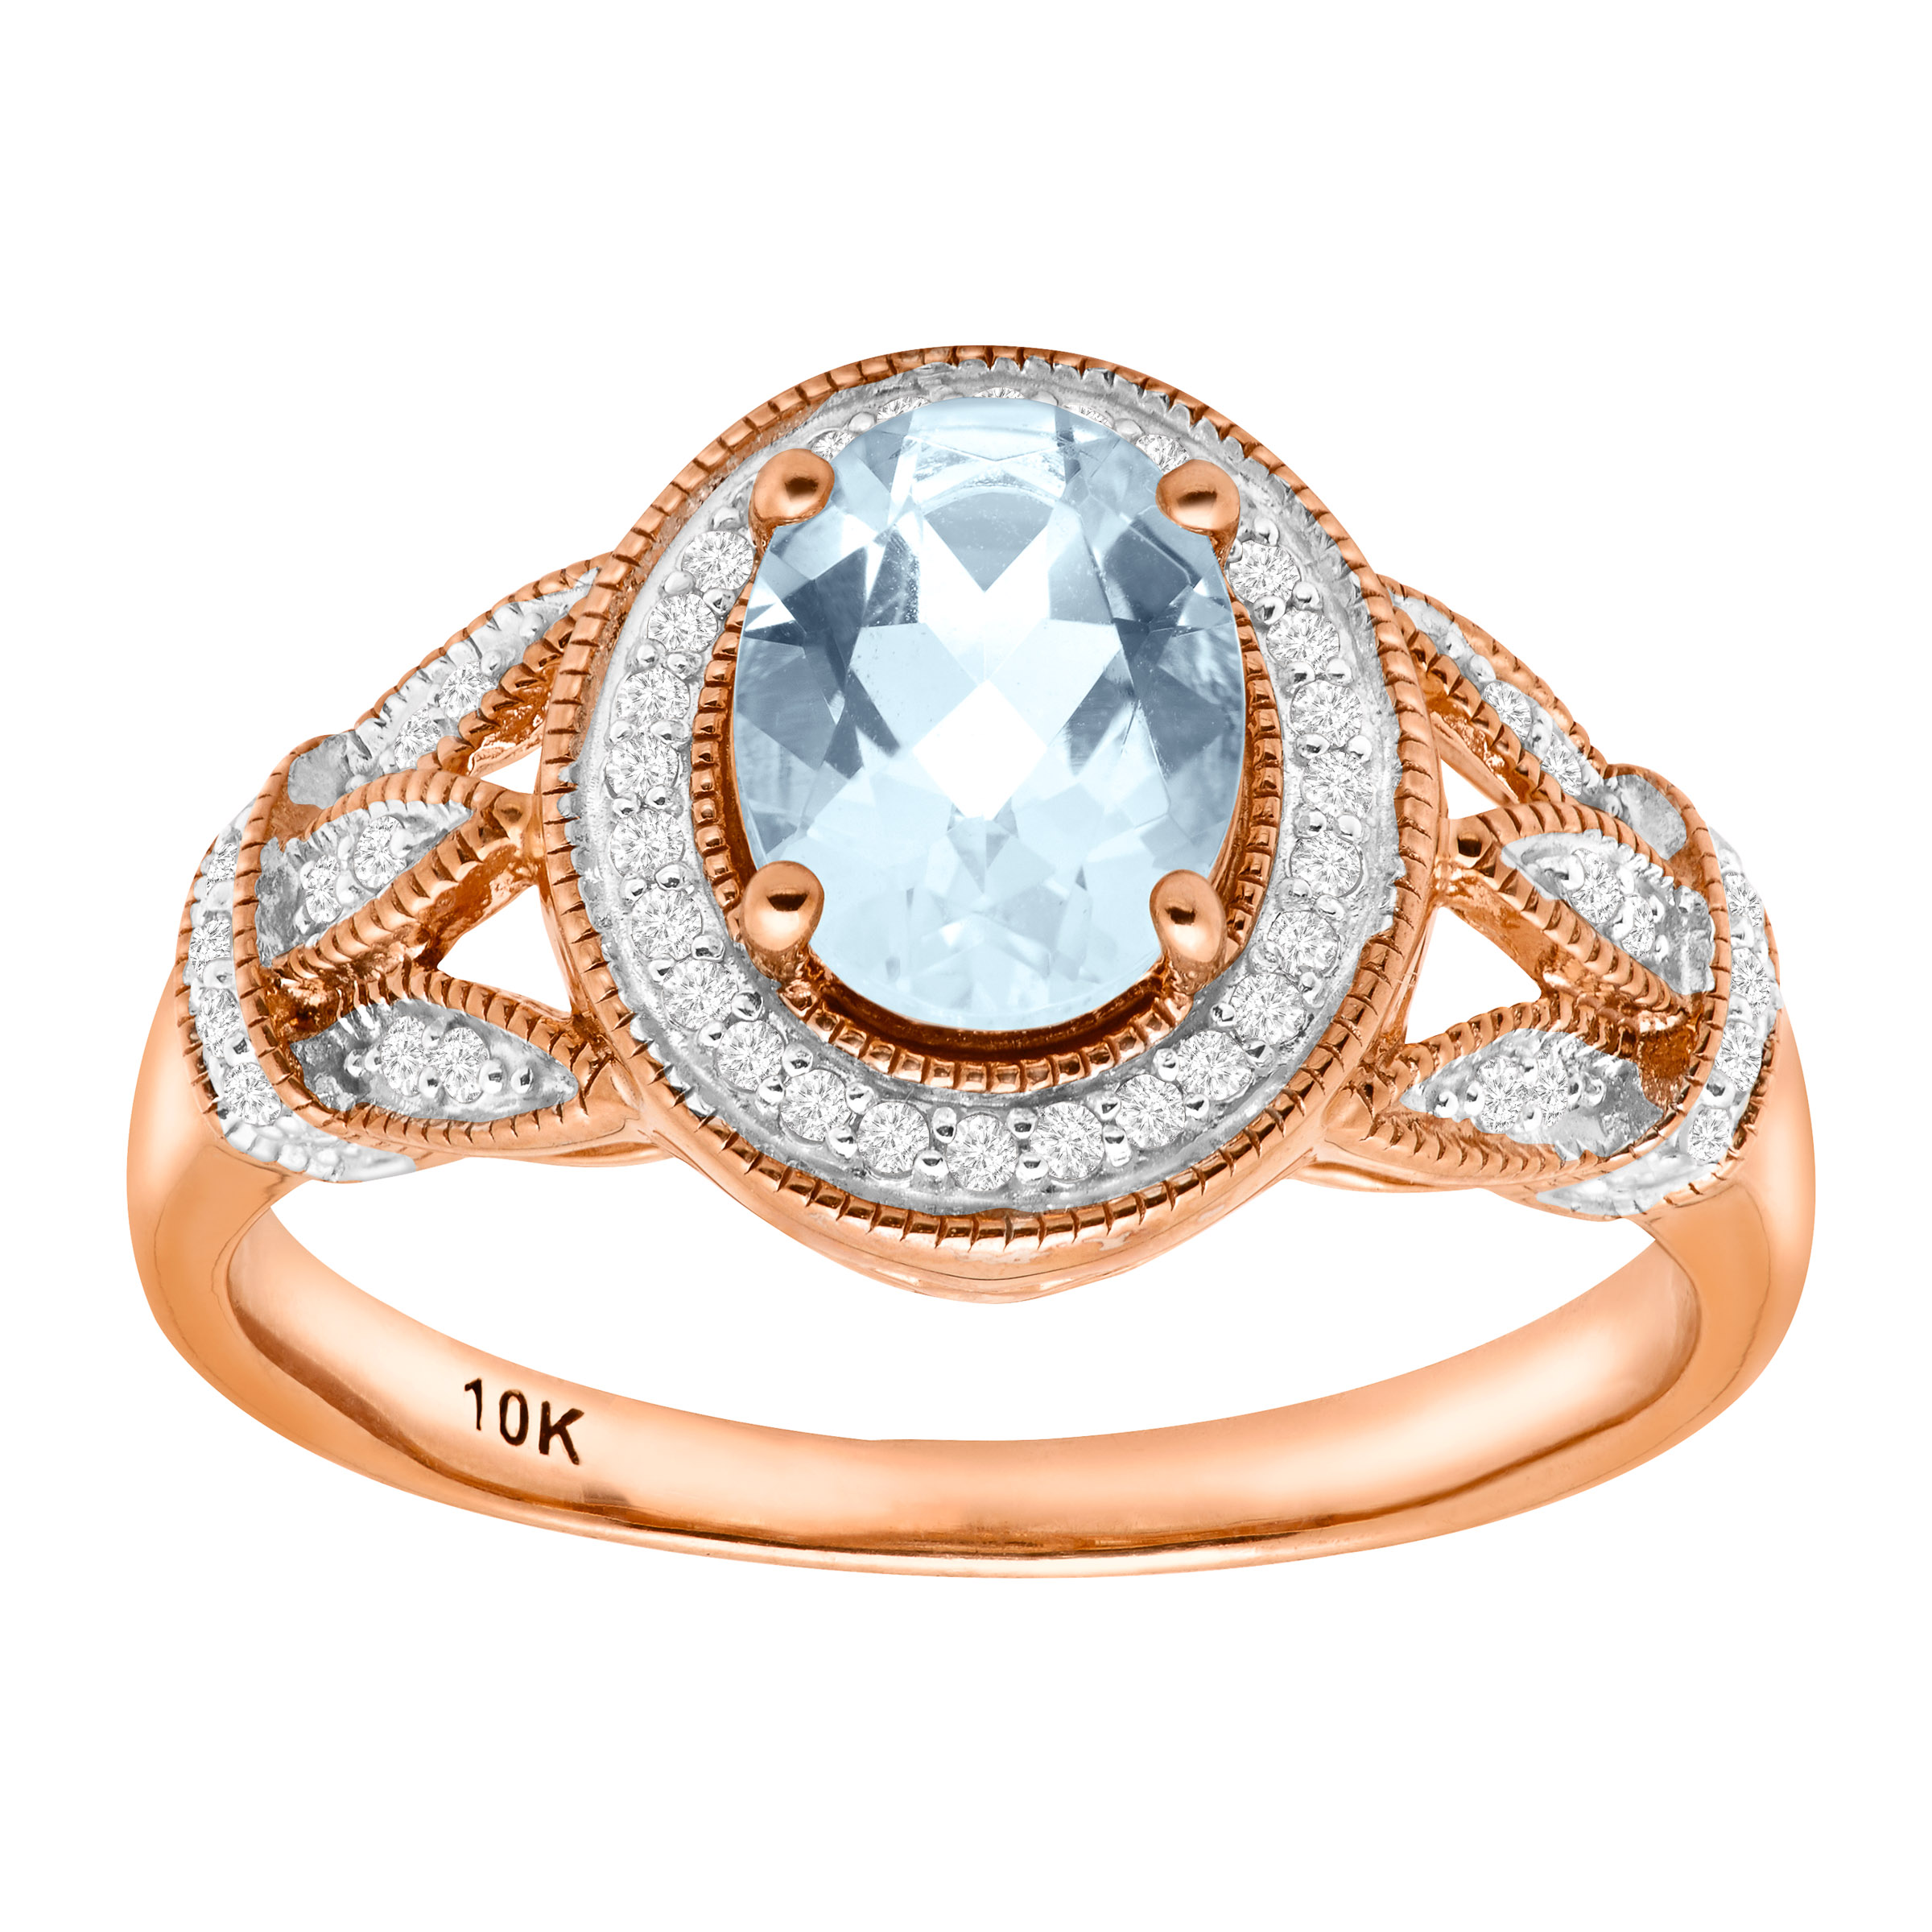 1 1 10 ct Natural Aquamarine & 1 6 ct Diamond Ring in 10kt Rose Gold by Richline Group